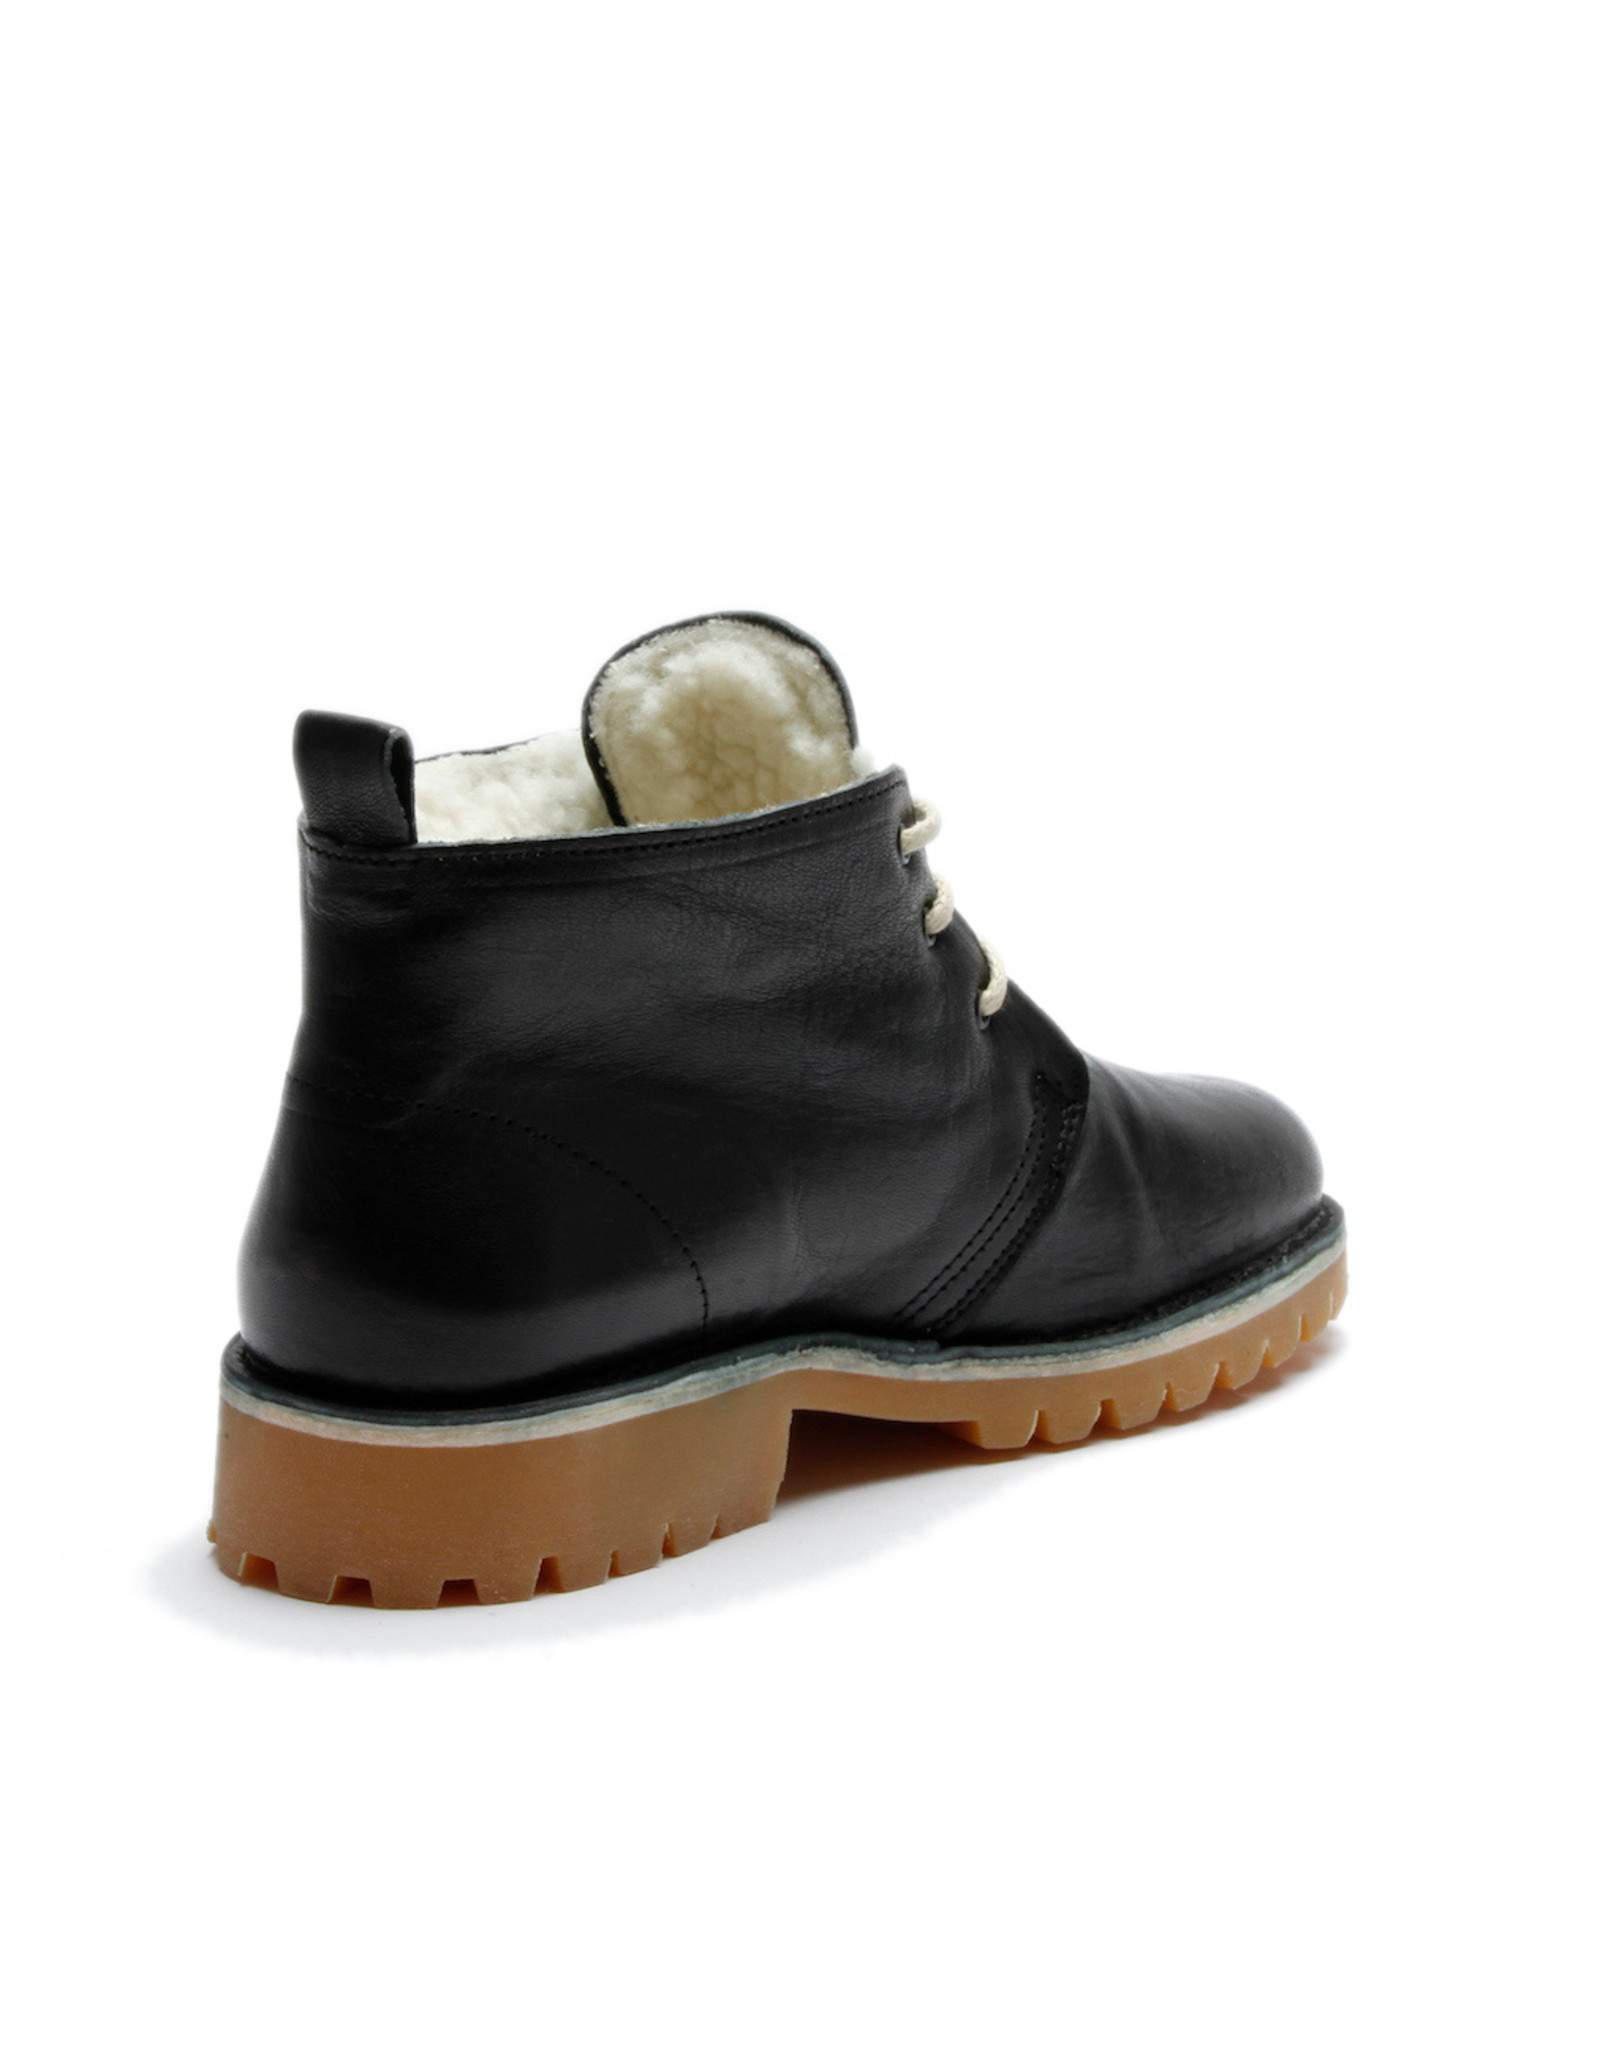 Grand Step Shoes Dari, lace-up shoes with wool lining